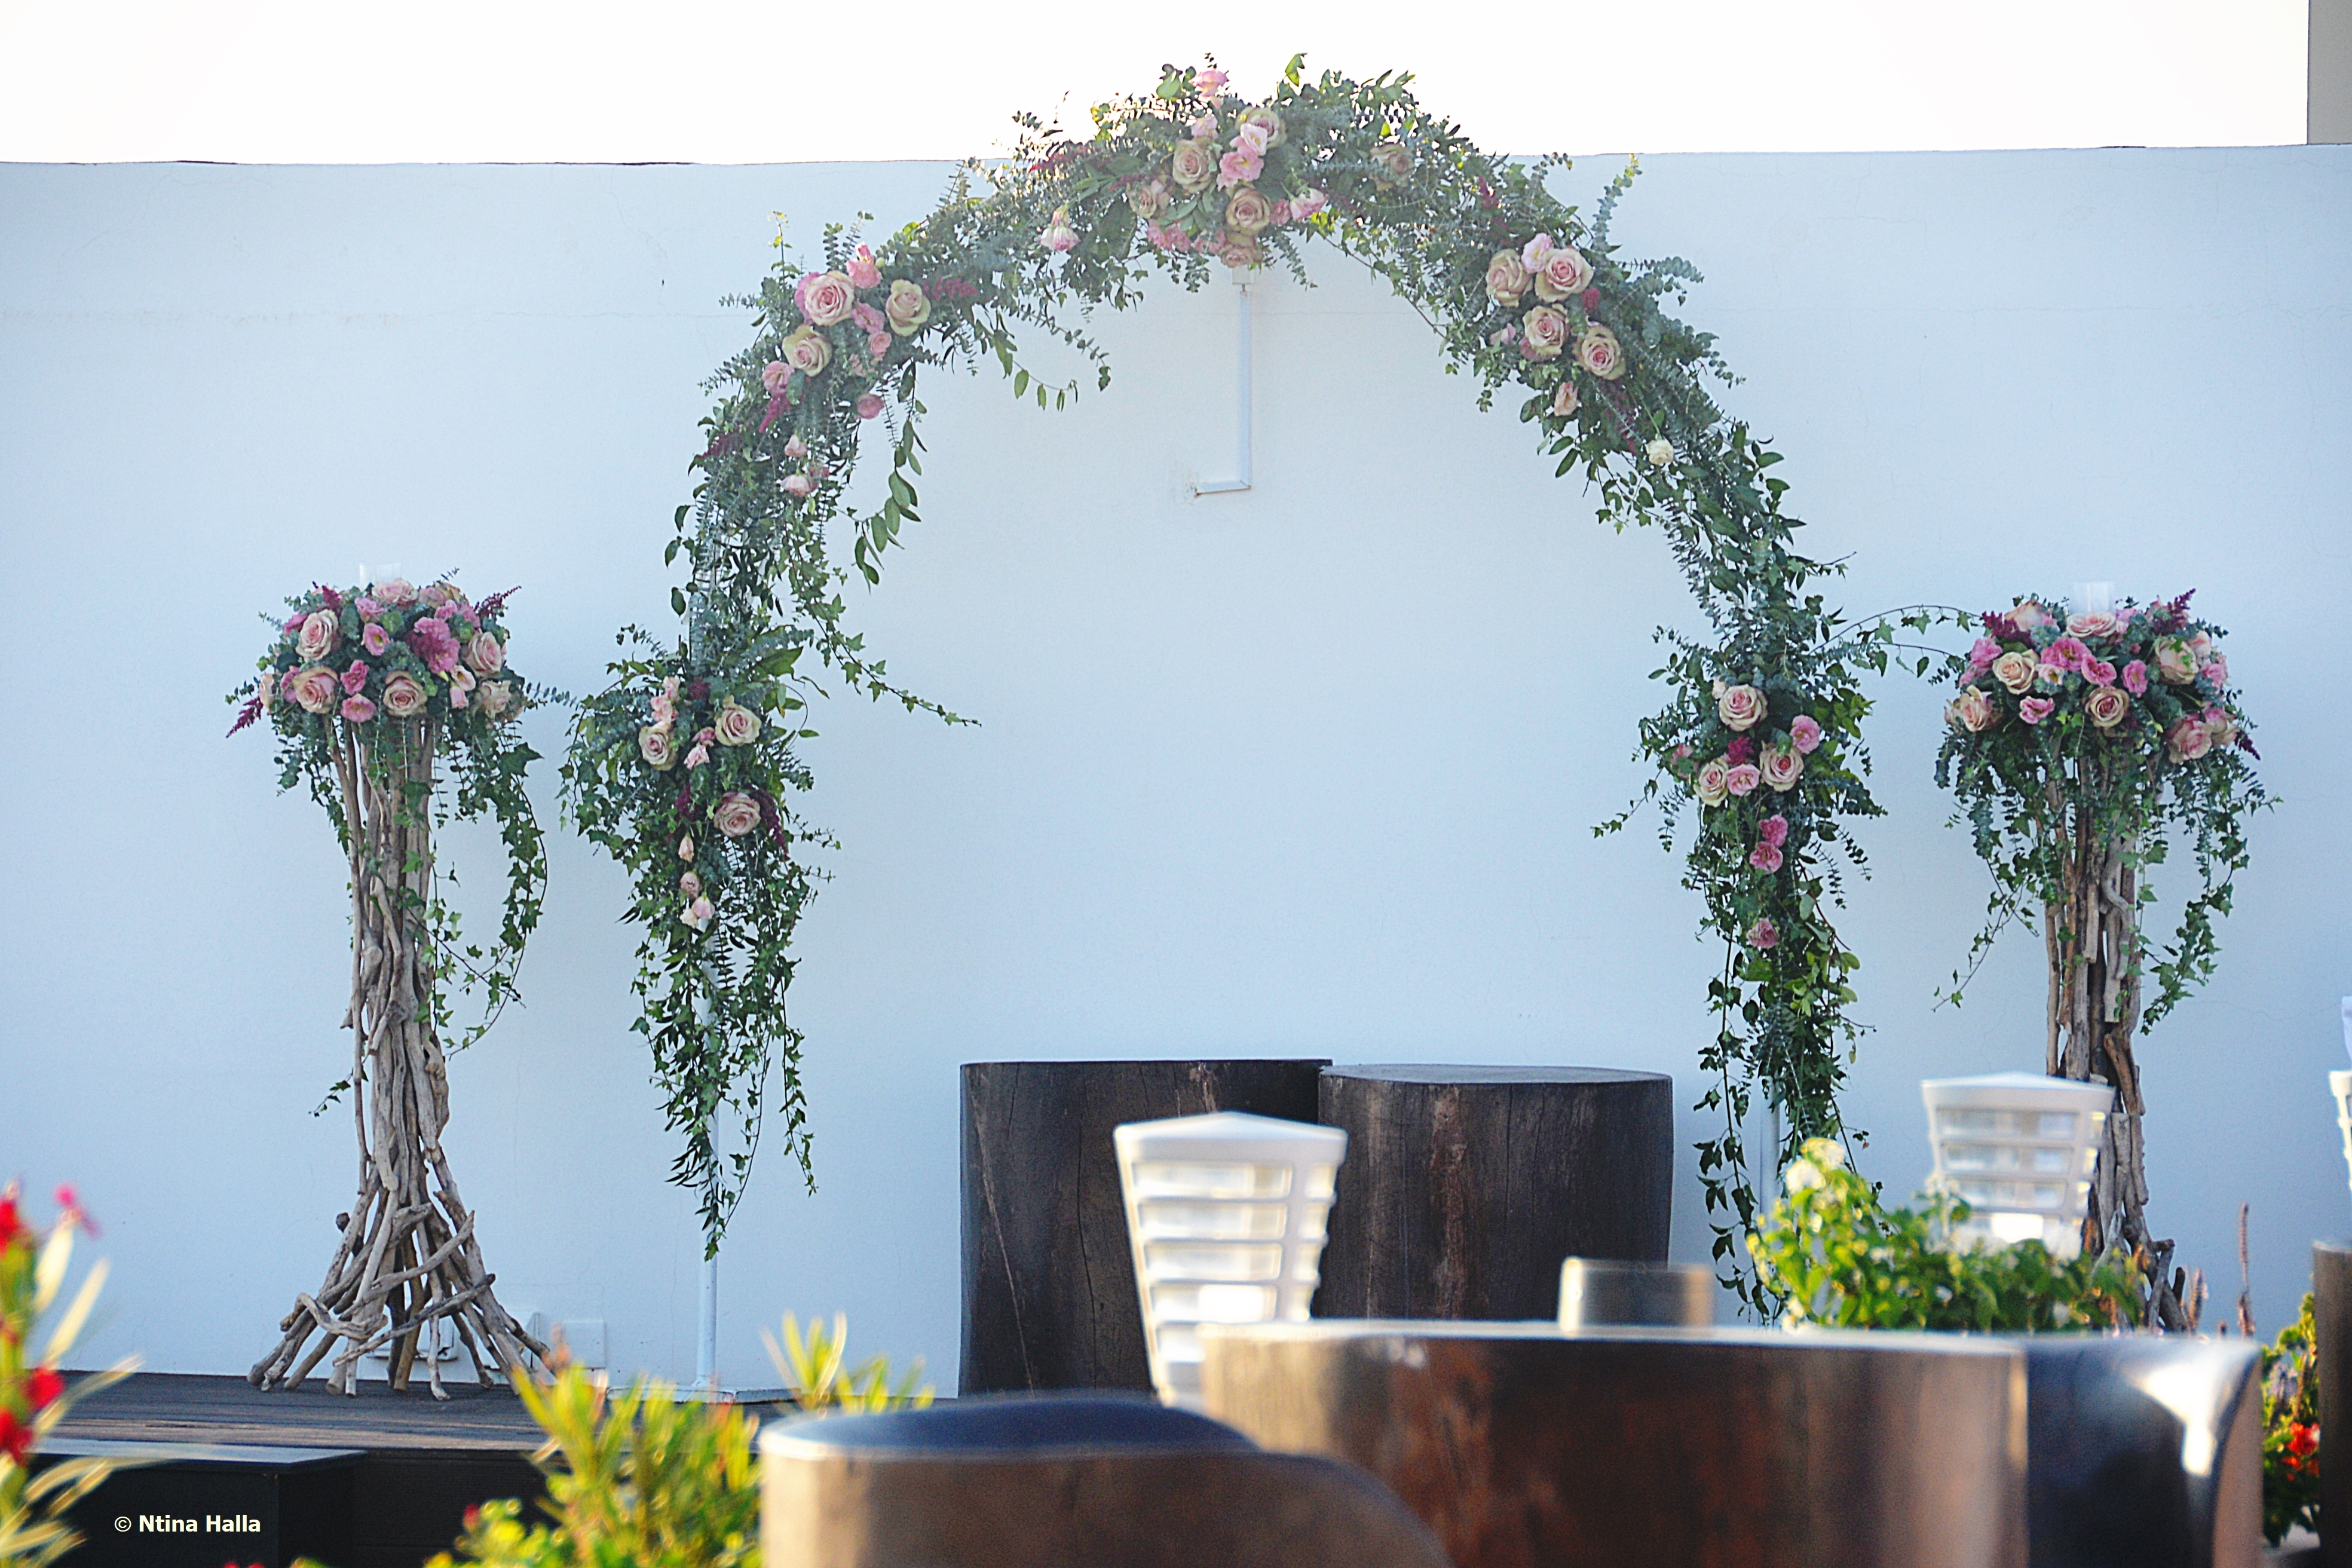 SKY LOUNGE _ WEDDING FLOWER DECO1.JPG